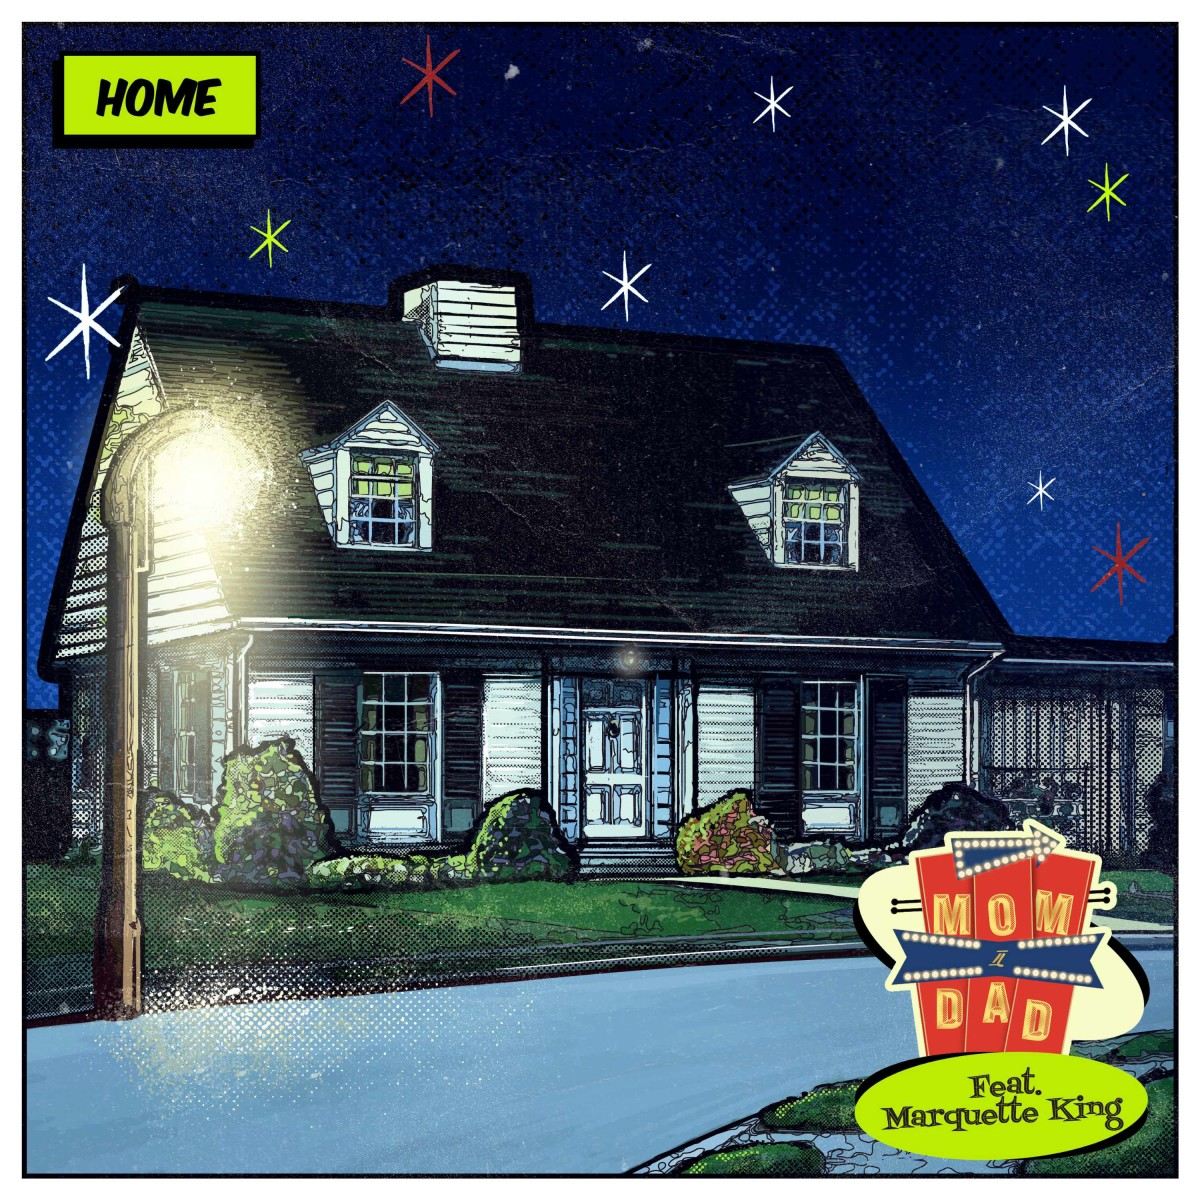 Mom N Dad - Home (feat. Marquette King) [Album Artwork]